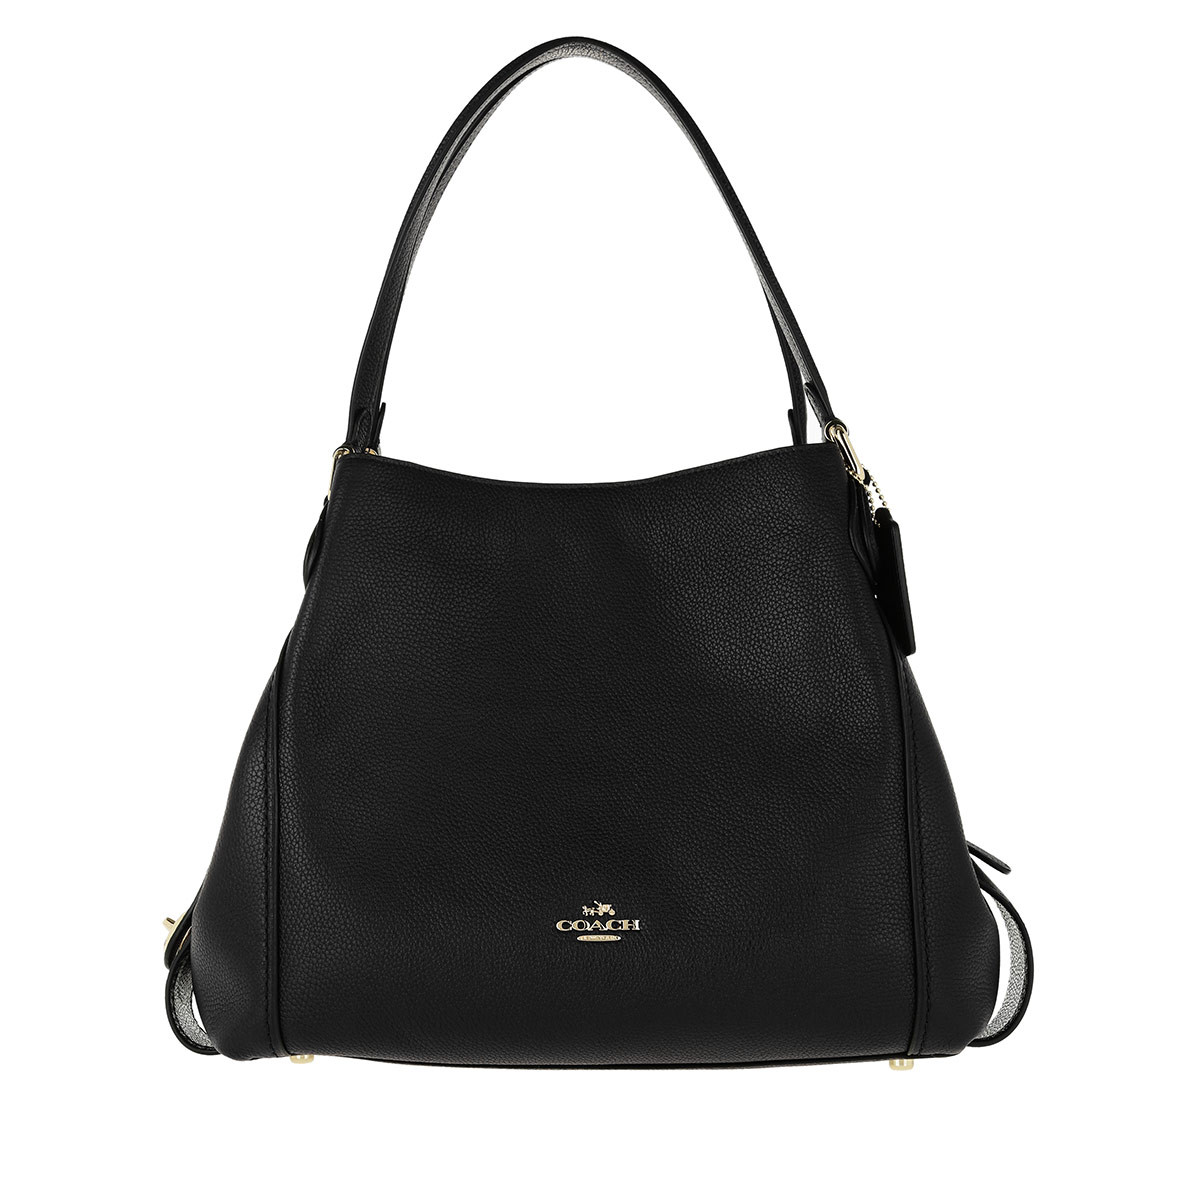 Coach Tote - Polished Pebble Leather Edie 31 Shoulder Bag Black - in schwarz - für Damen